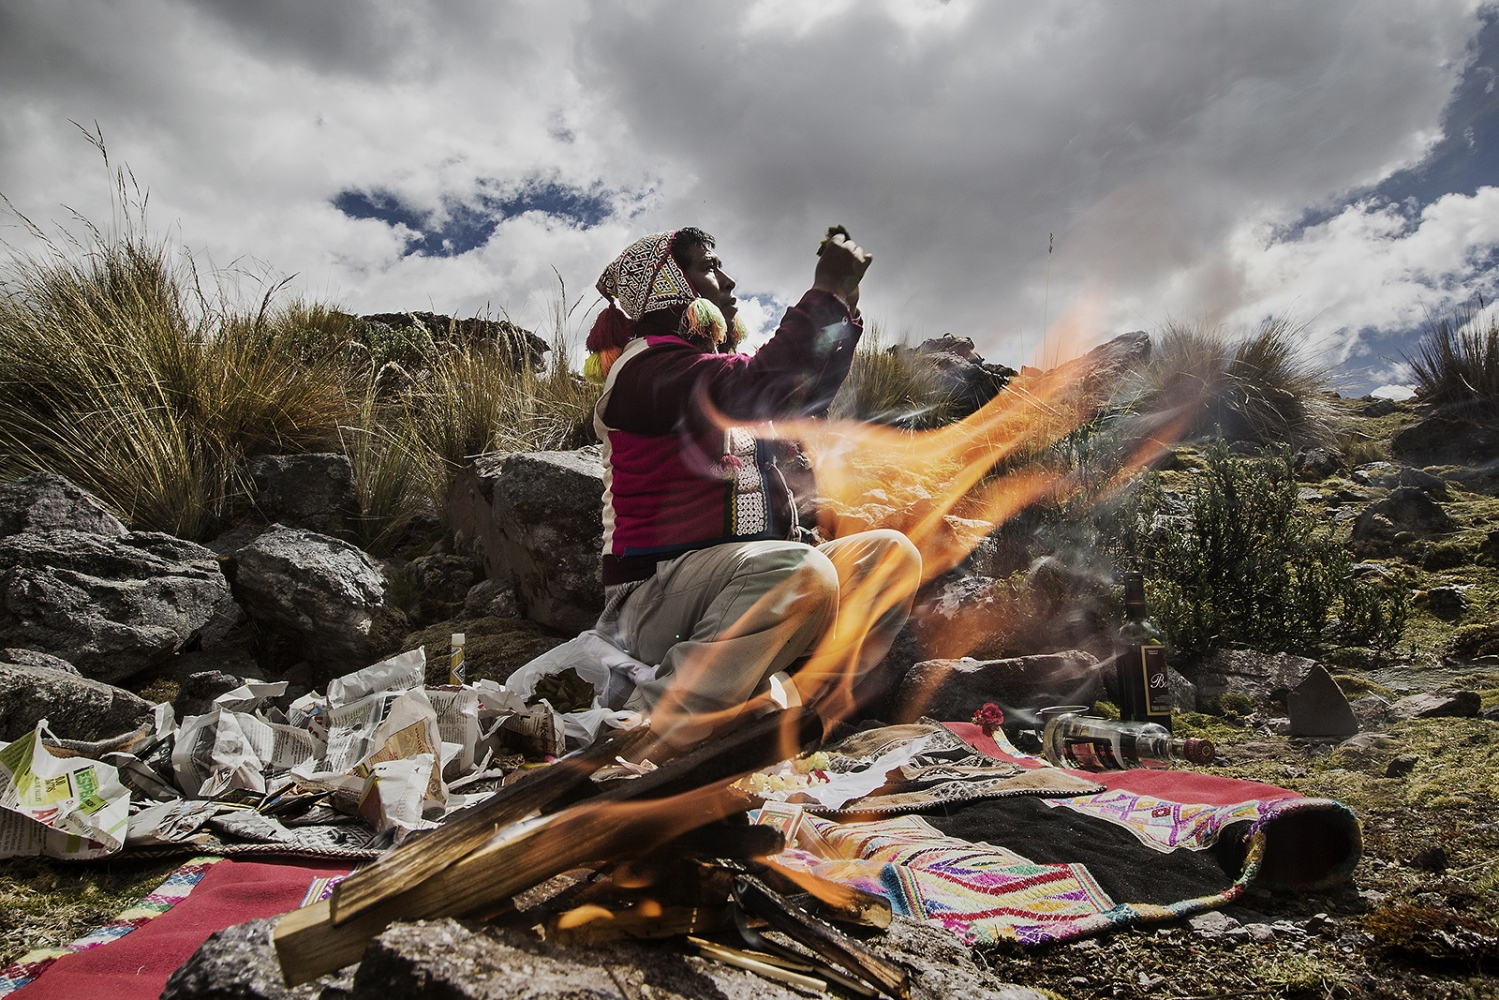 Isidro Callo Huaman is from the Ausangate nation. He lives up to 4600 m. Falling in Ocongate district. He is doing a ritual offer to relate with  Apus (spirits of the sacred mountains) and Pachamama (Mother Earth).